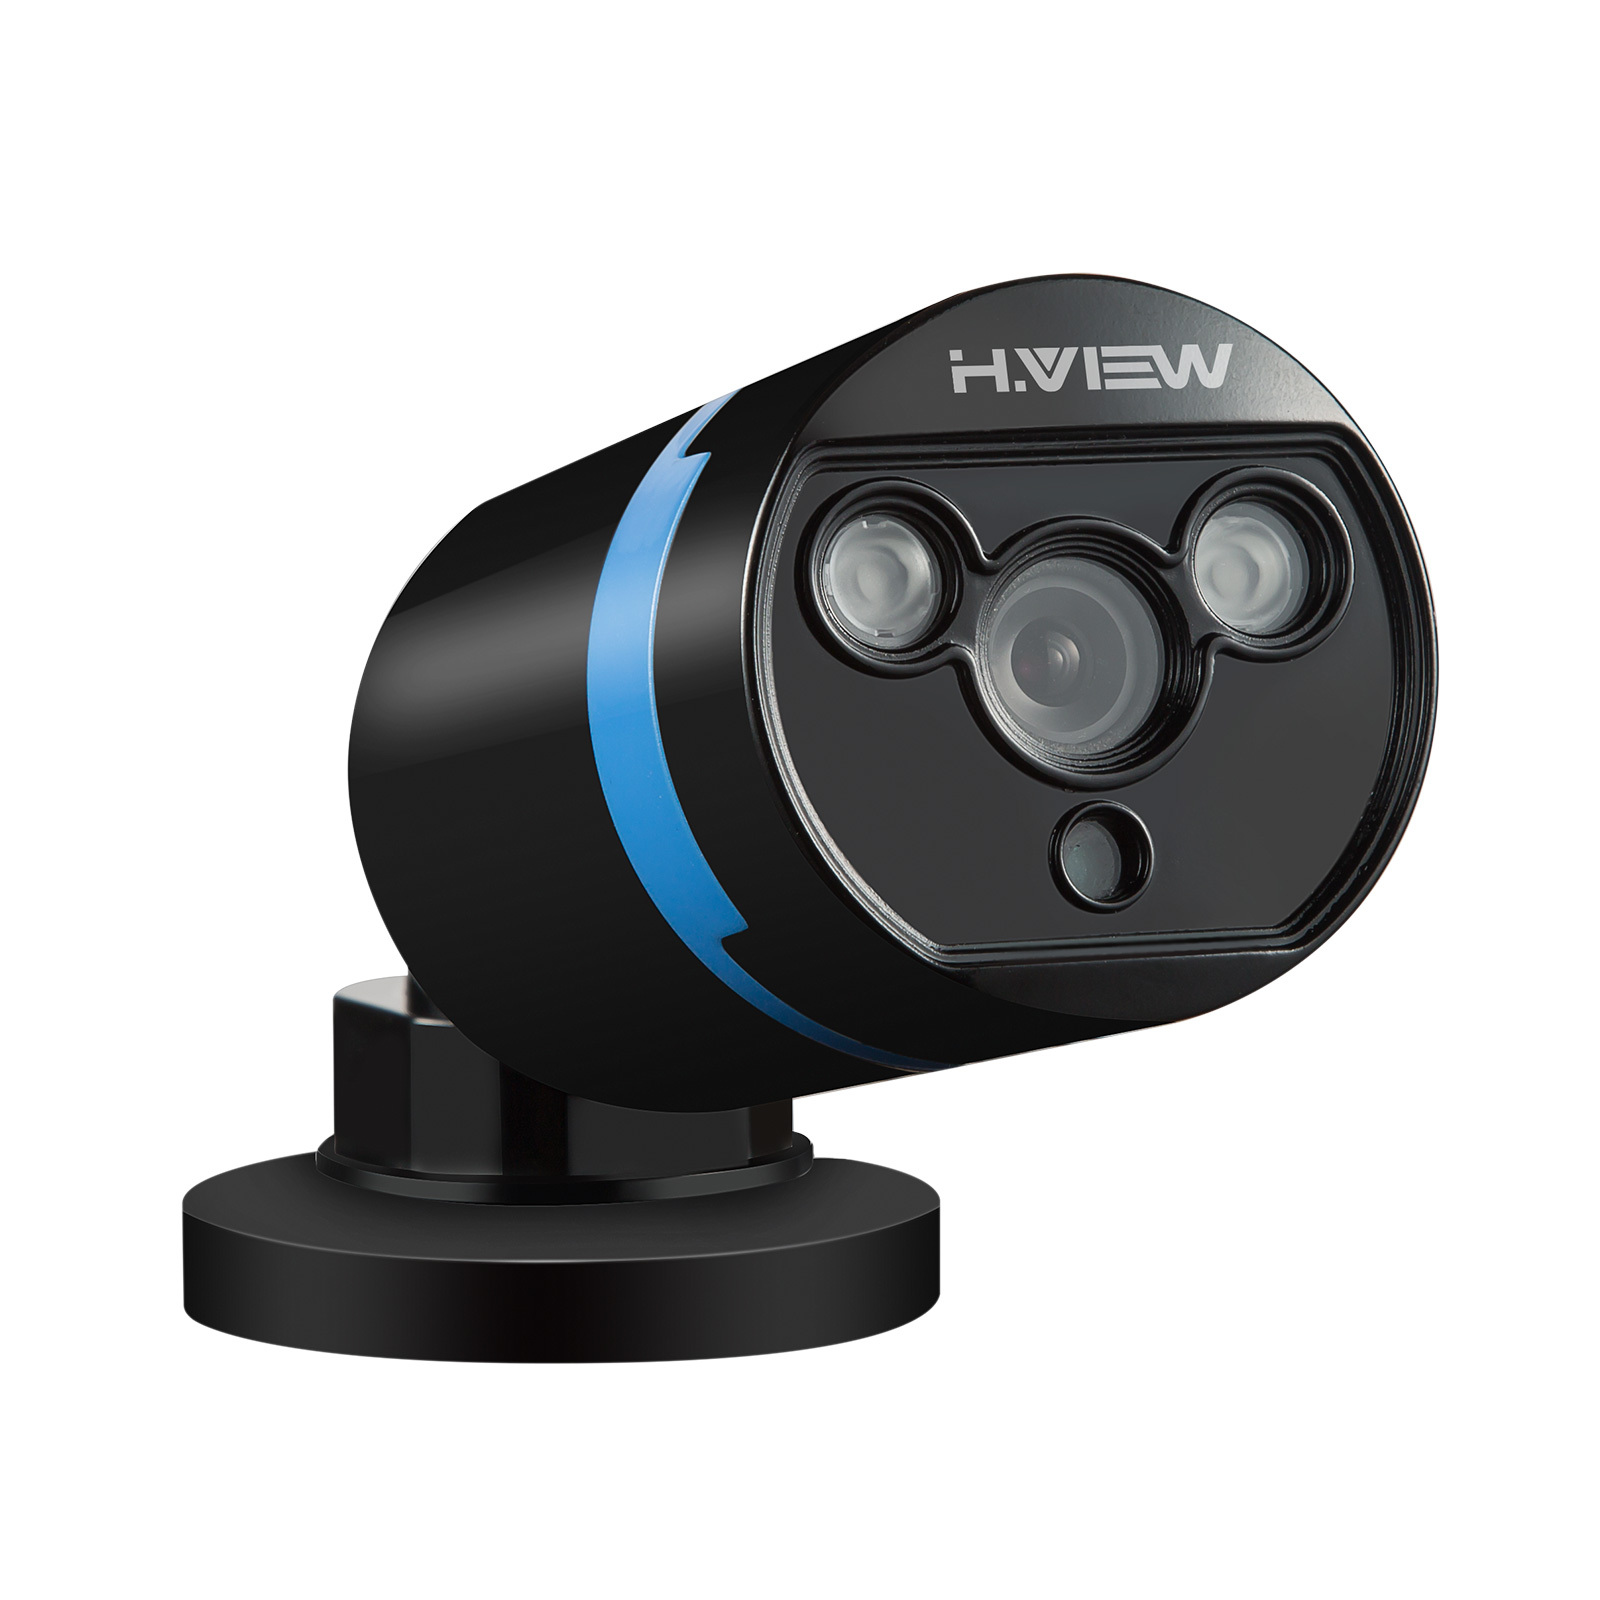 H.View HD 1080P Video Home Security System 1TB Hard Drive, 8